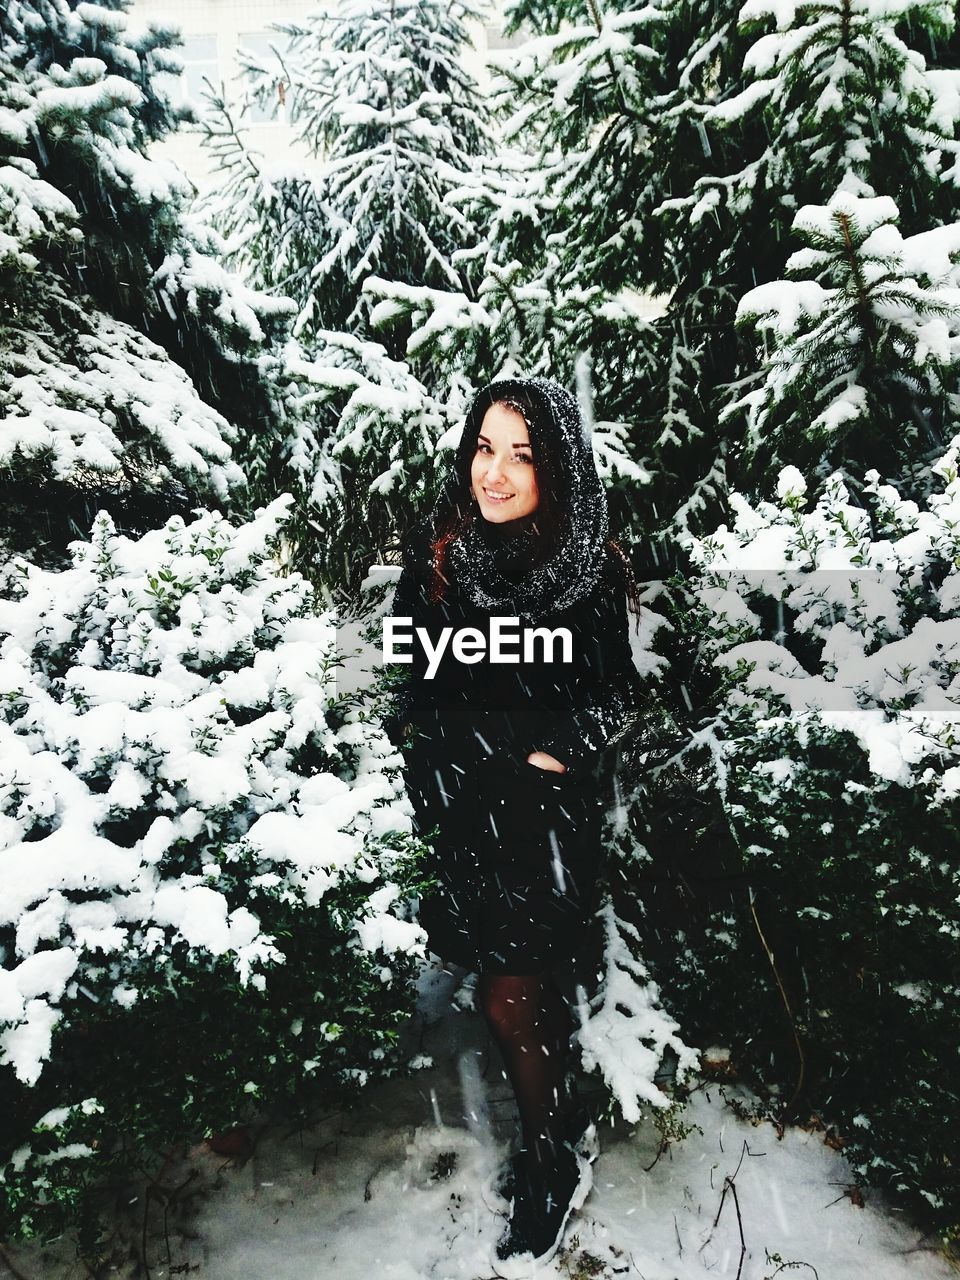 Portrait of young woman standing amidst plants during snowfall